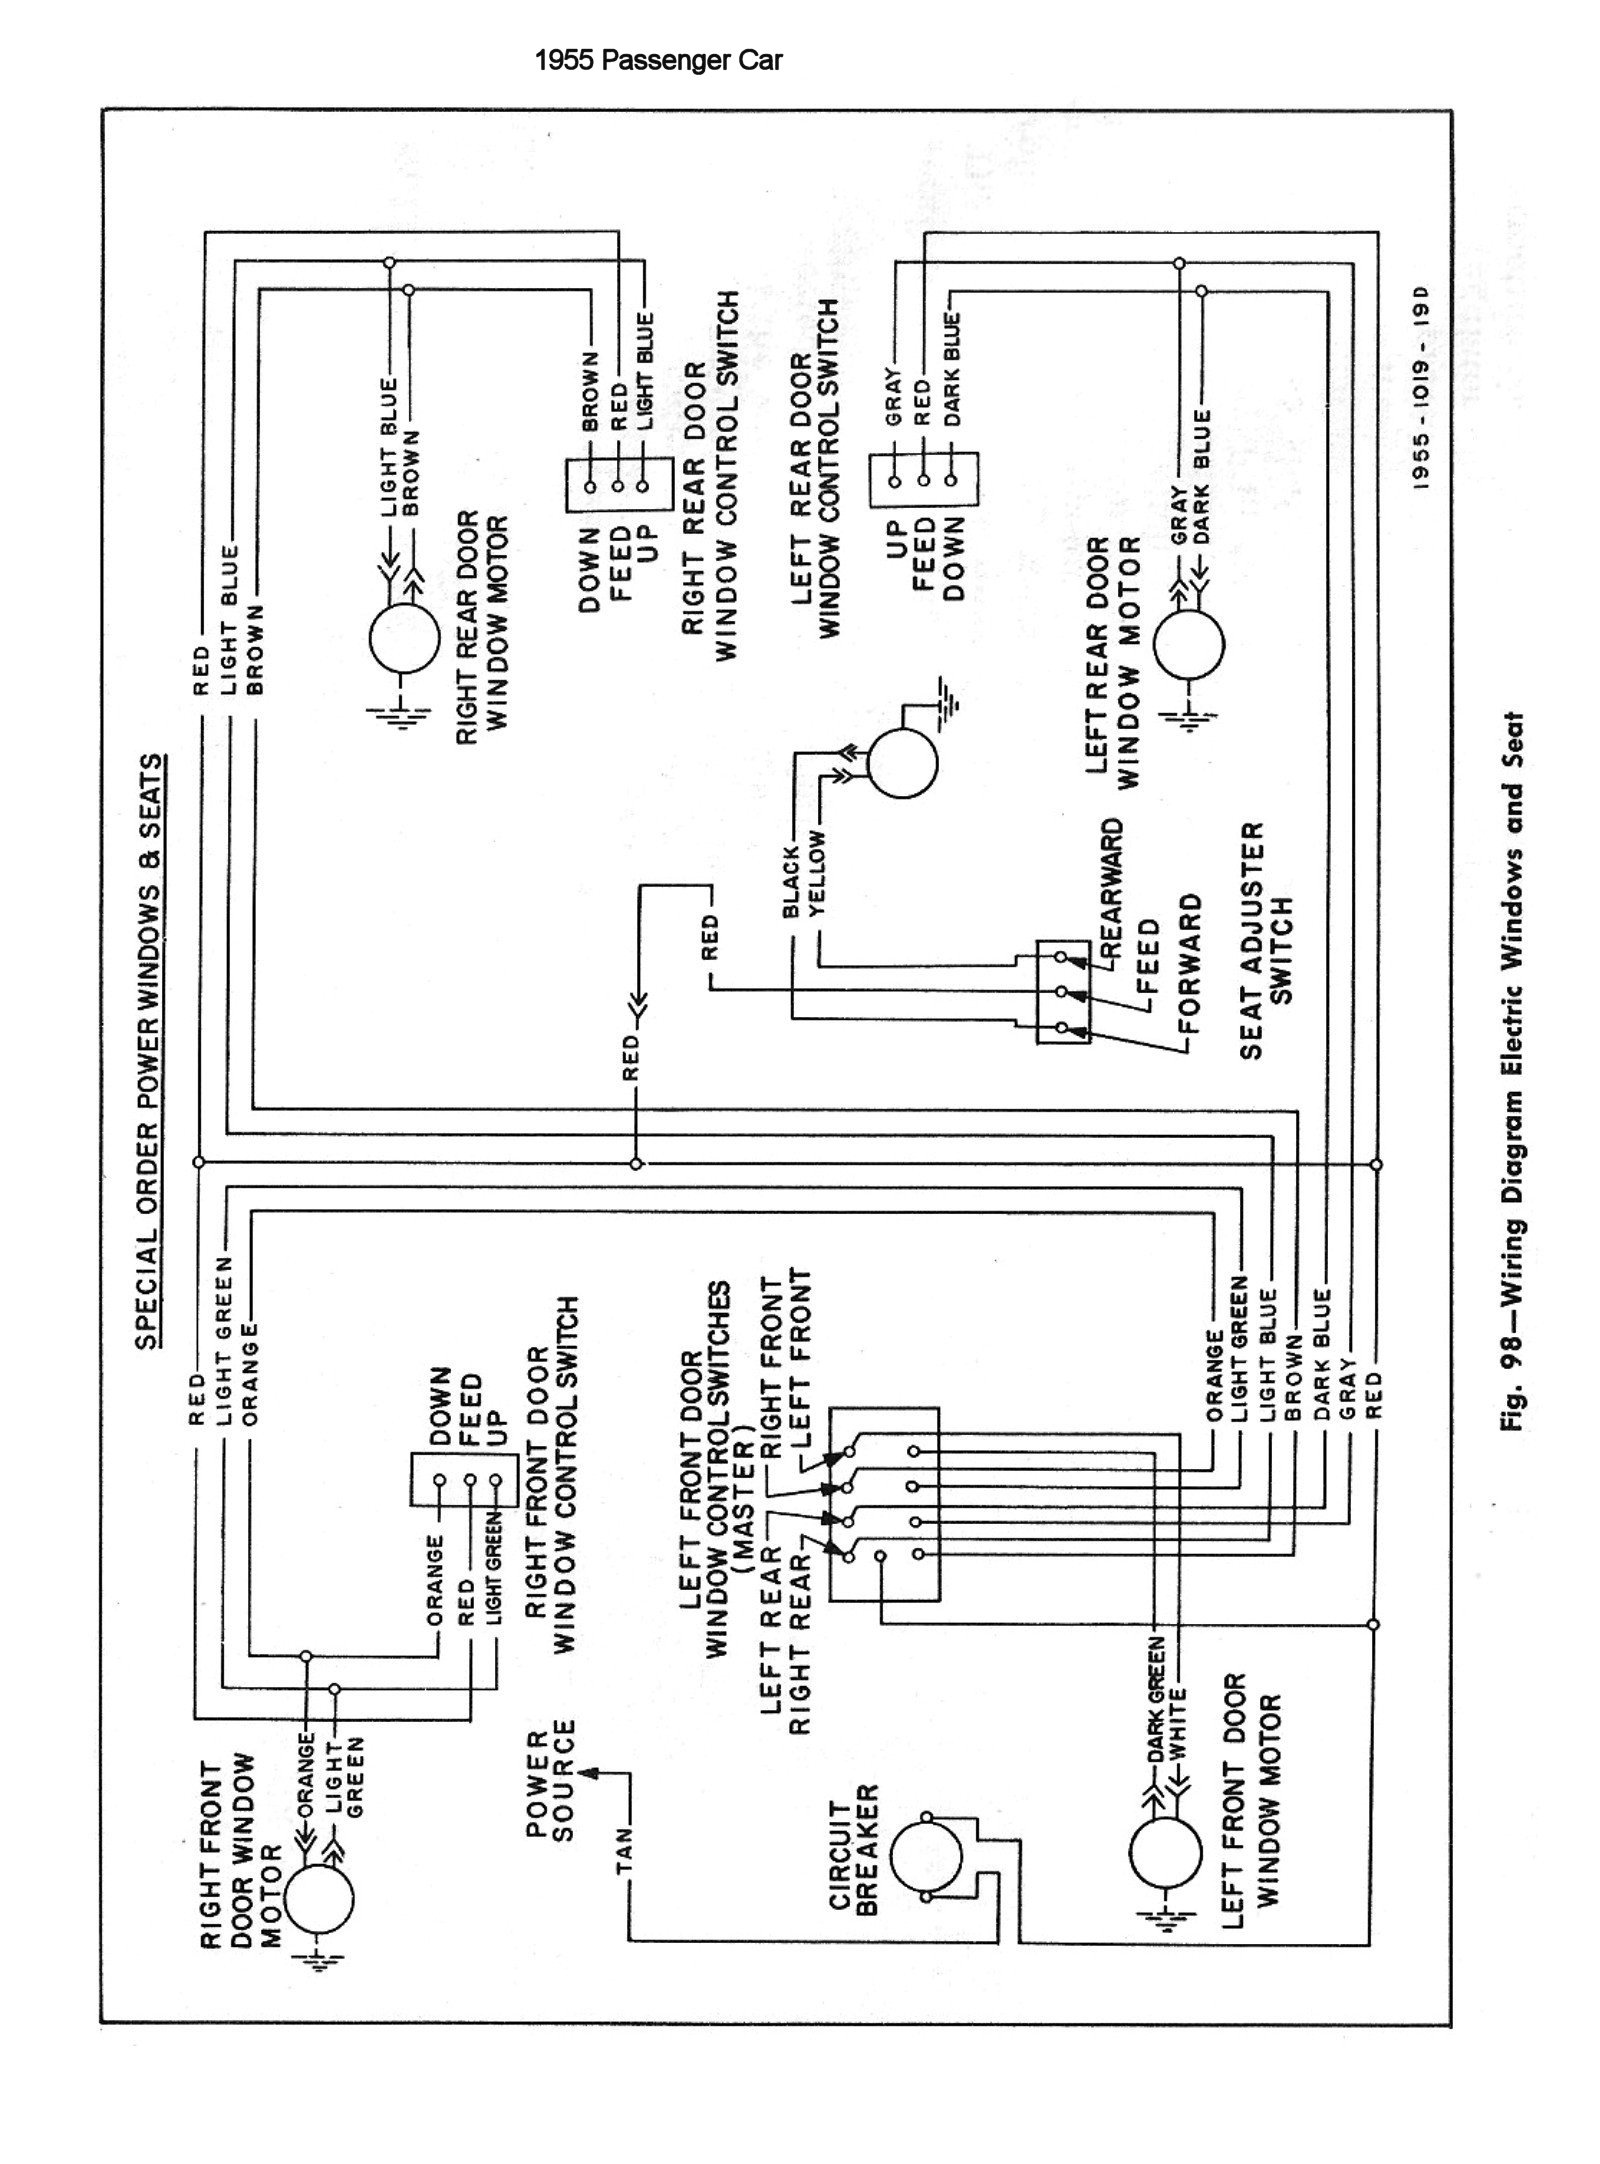 55csm0146 chevy wiring diagrams 1957 Ford Wiring Diagram at fashall.co